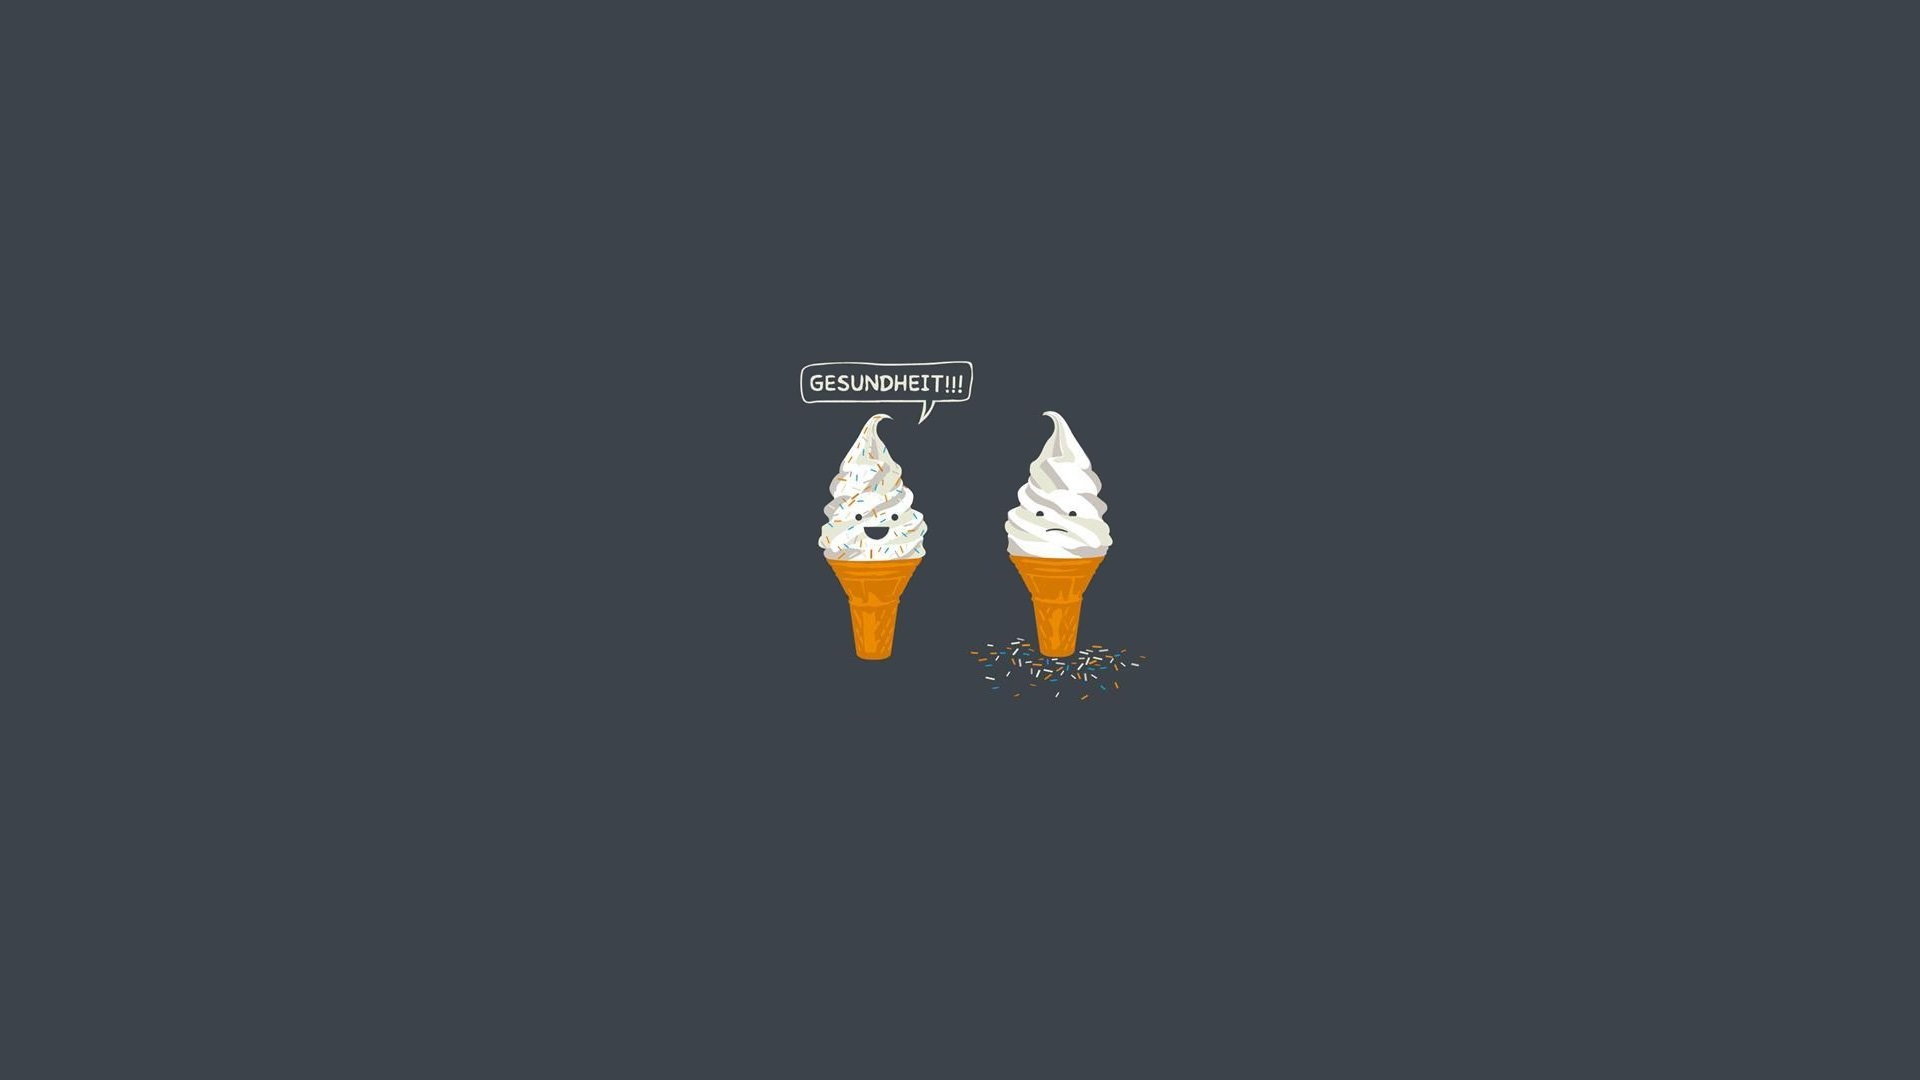 Cute Funny Backgrounds Wallpapers Cave Desktop Background: Humorous Wallpapers For Desktop ·① WallpaperTag